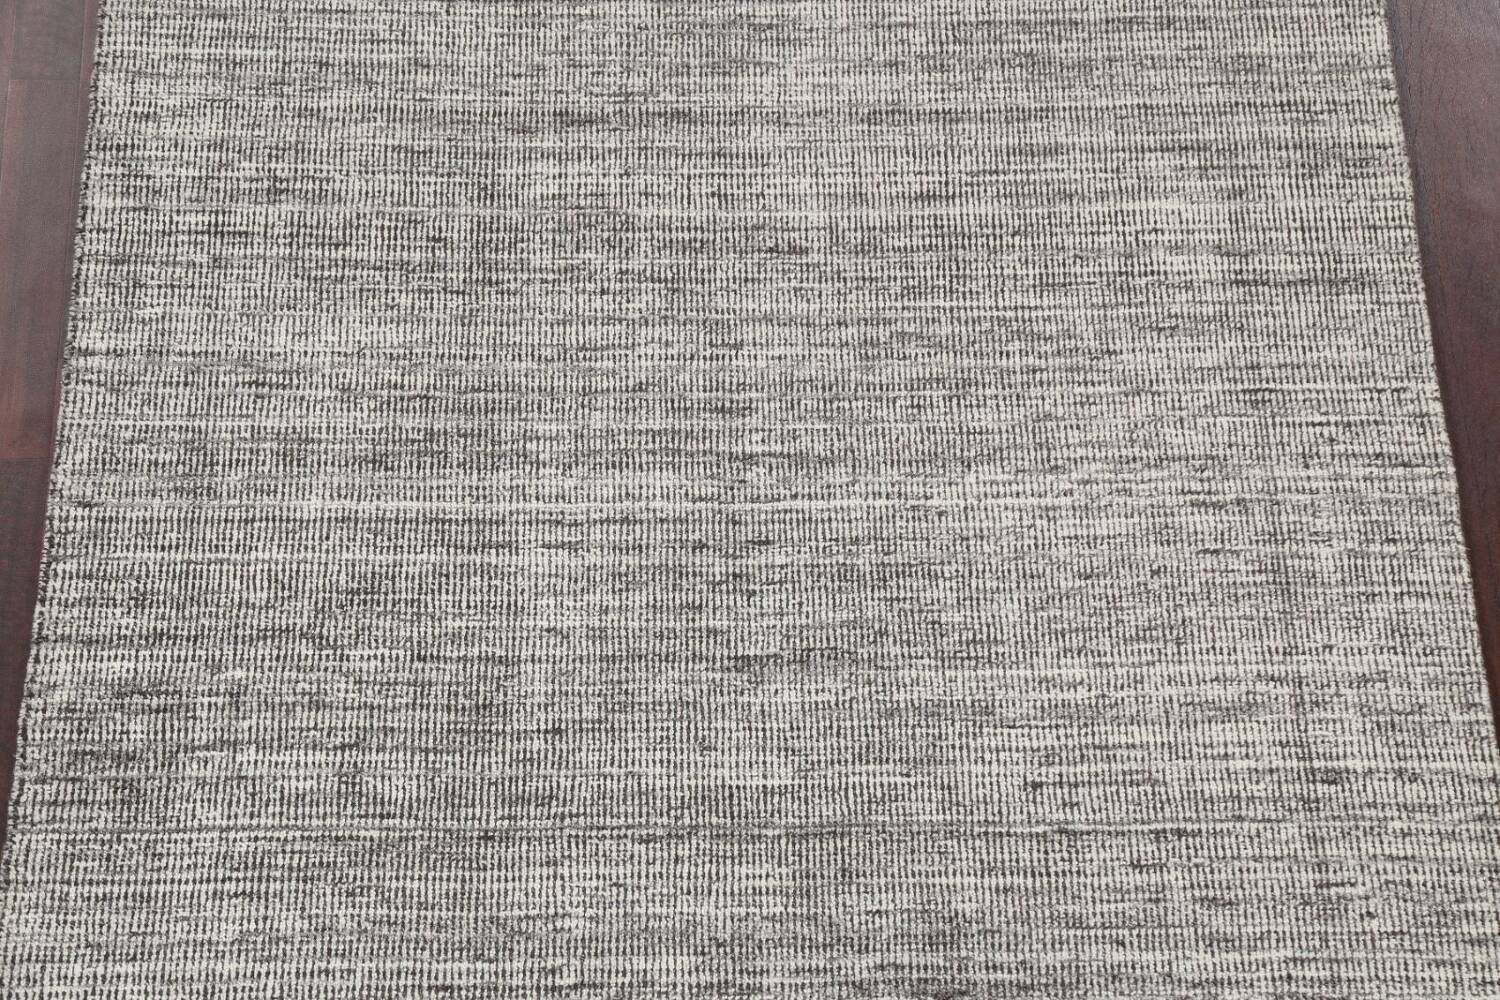 Abstract Gabbeh Wool Area Rug 5x8 image 4